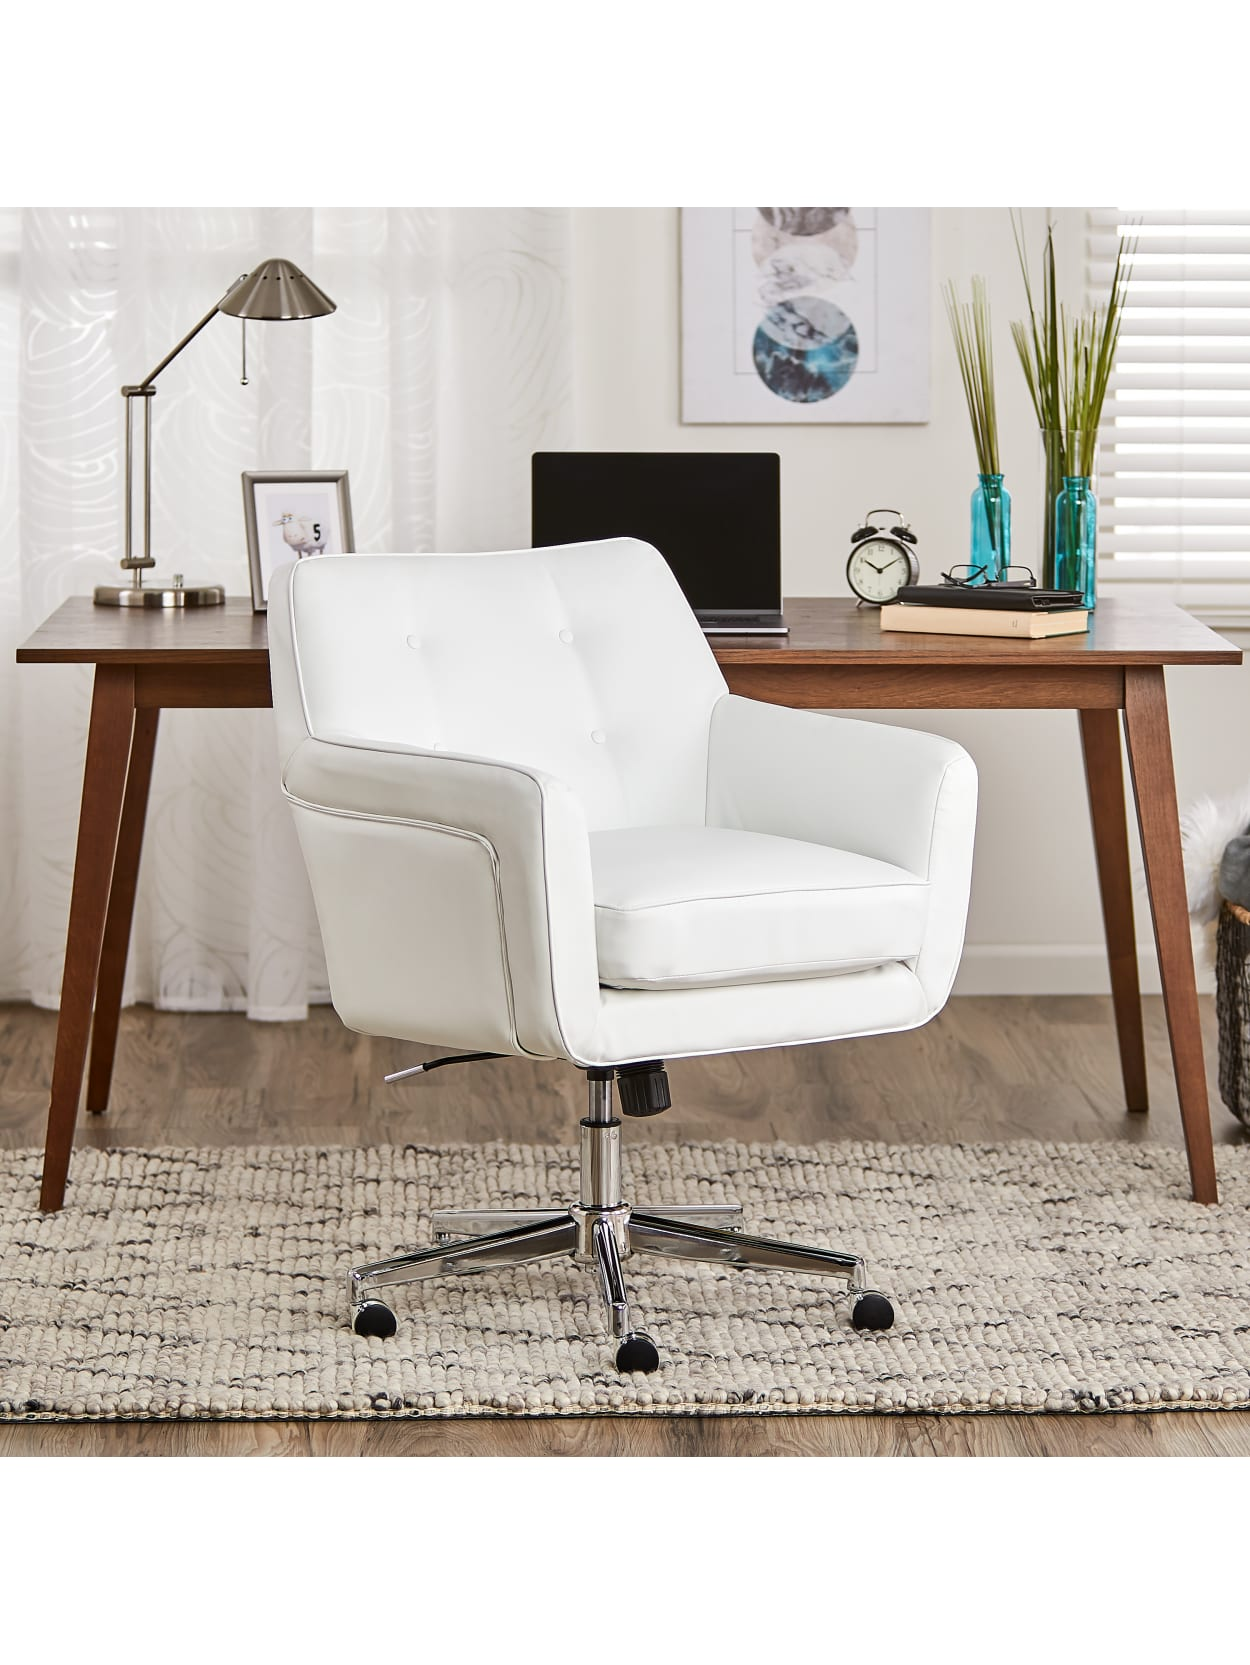 Serta Ashland Home Bonded Leather Mid Back Office Chair Whitechrome Office Depot